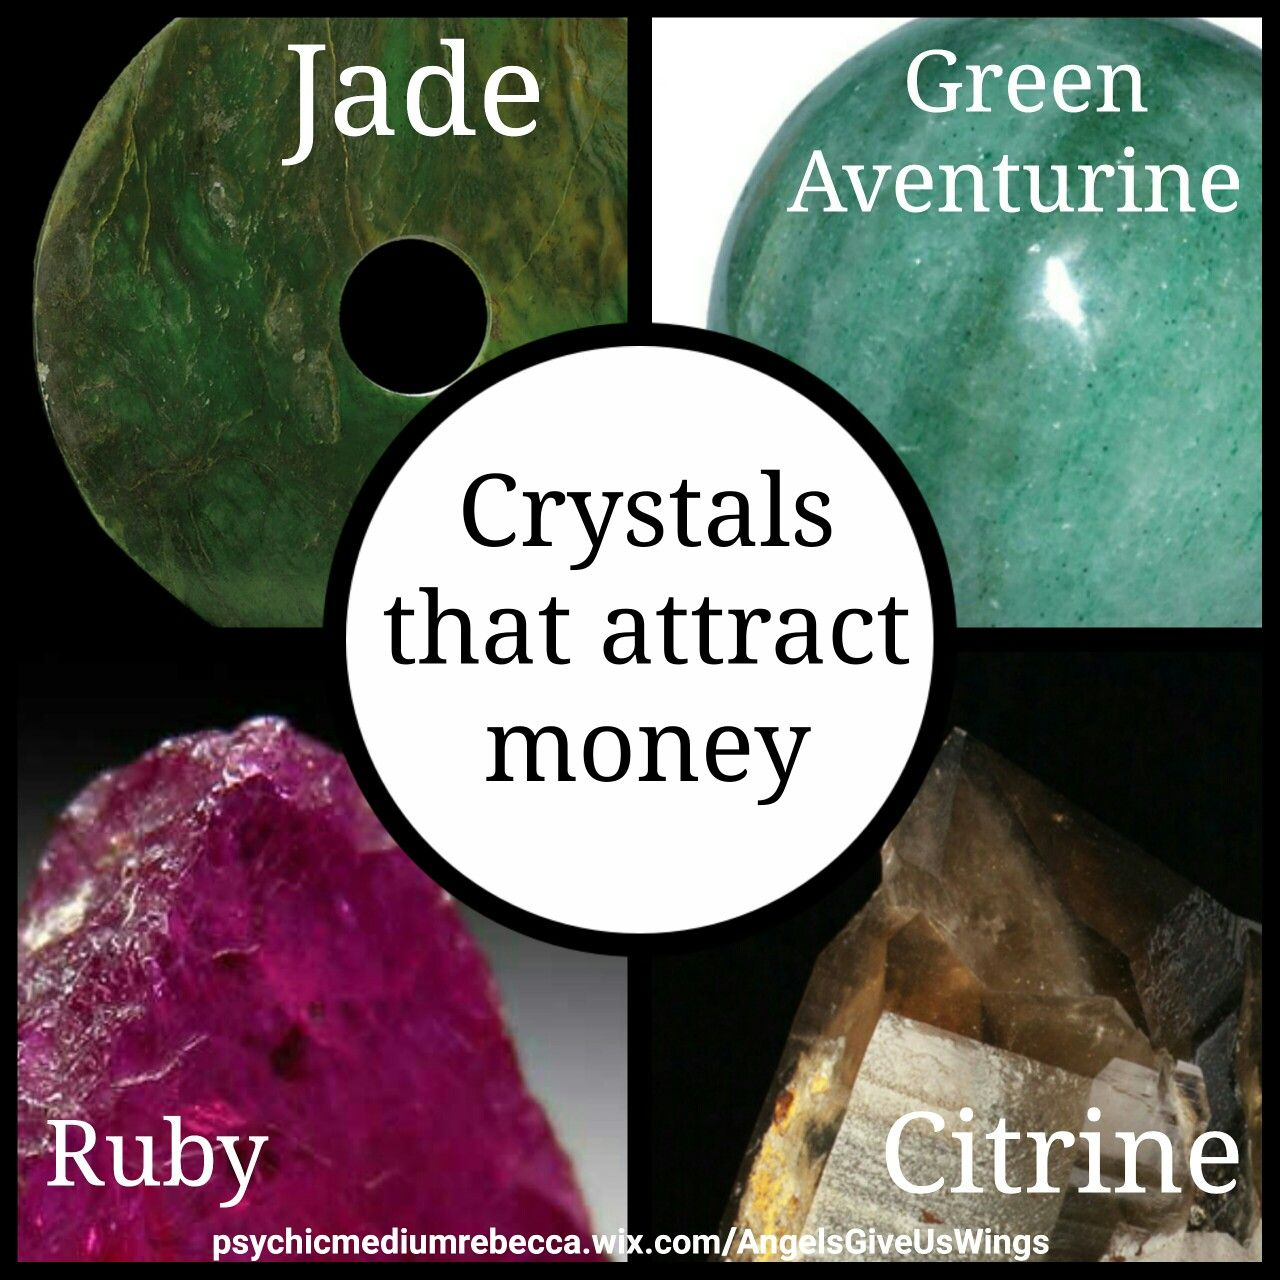 Possible side effects of using crystals   Crystals   Meditation